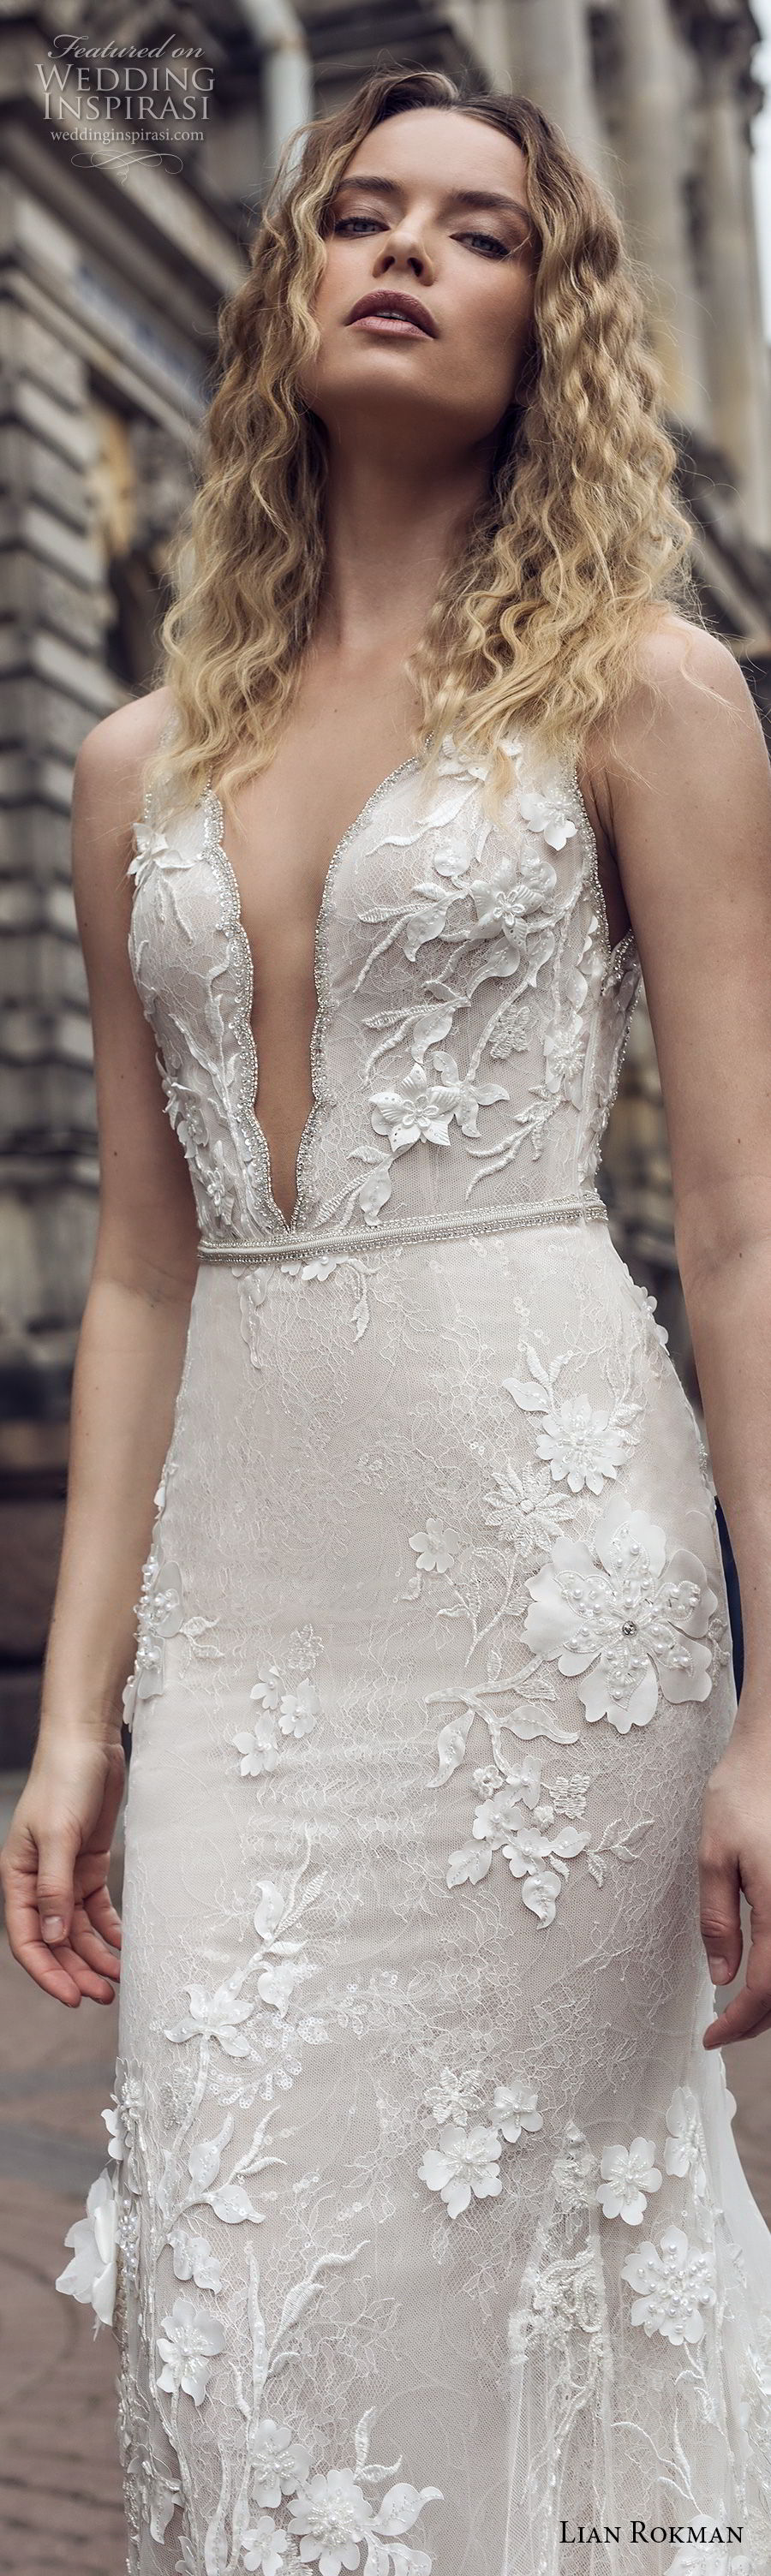 lian rokman 2018 bridal sleeveless deep plunging v neck full embellishment elegant sexy fit and flare wedding dress low open back medium train (2) lv